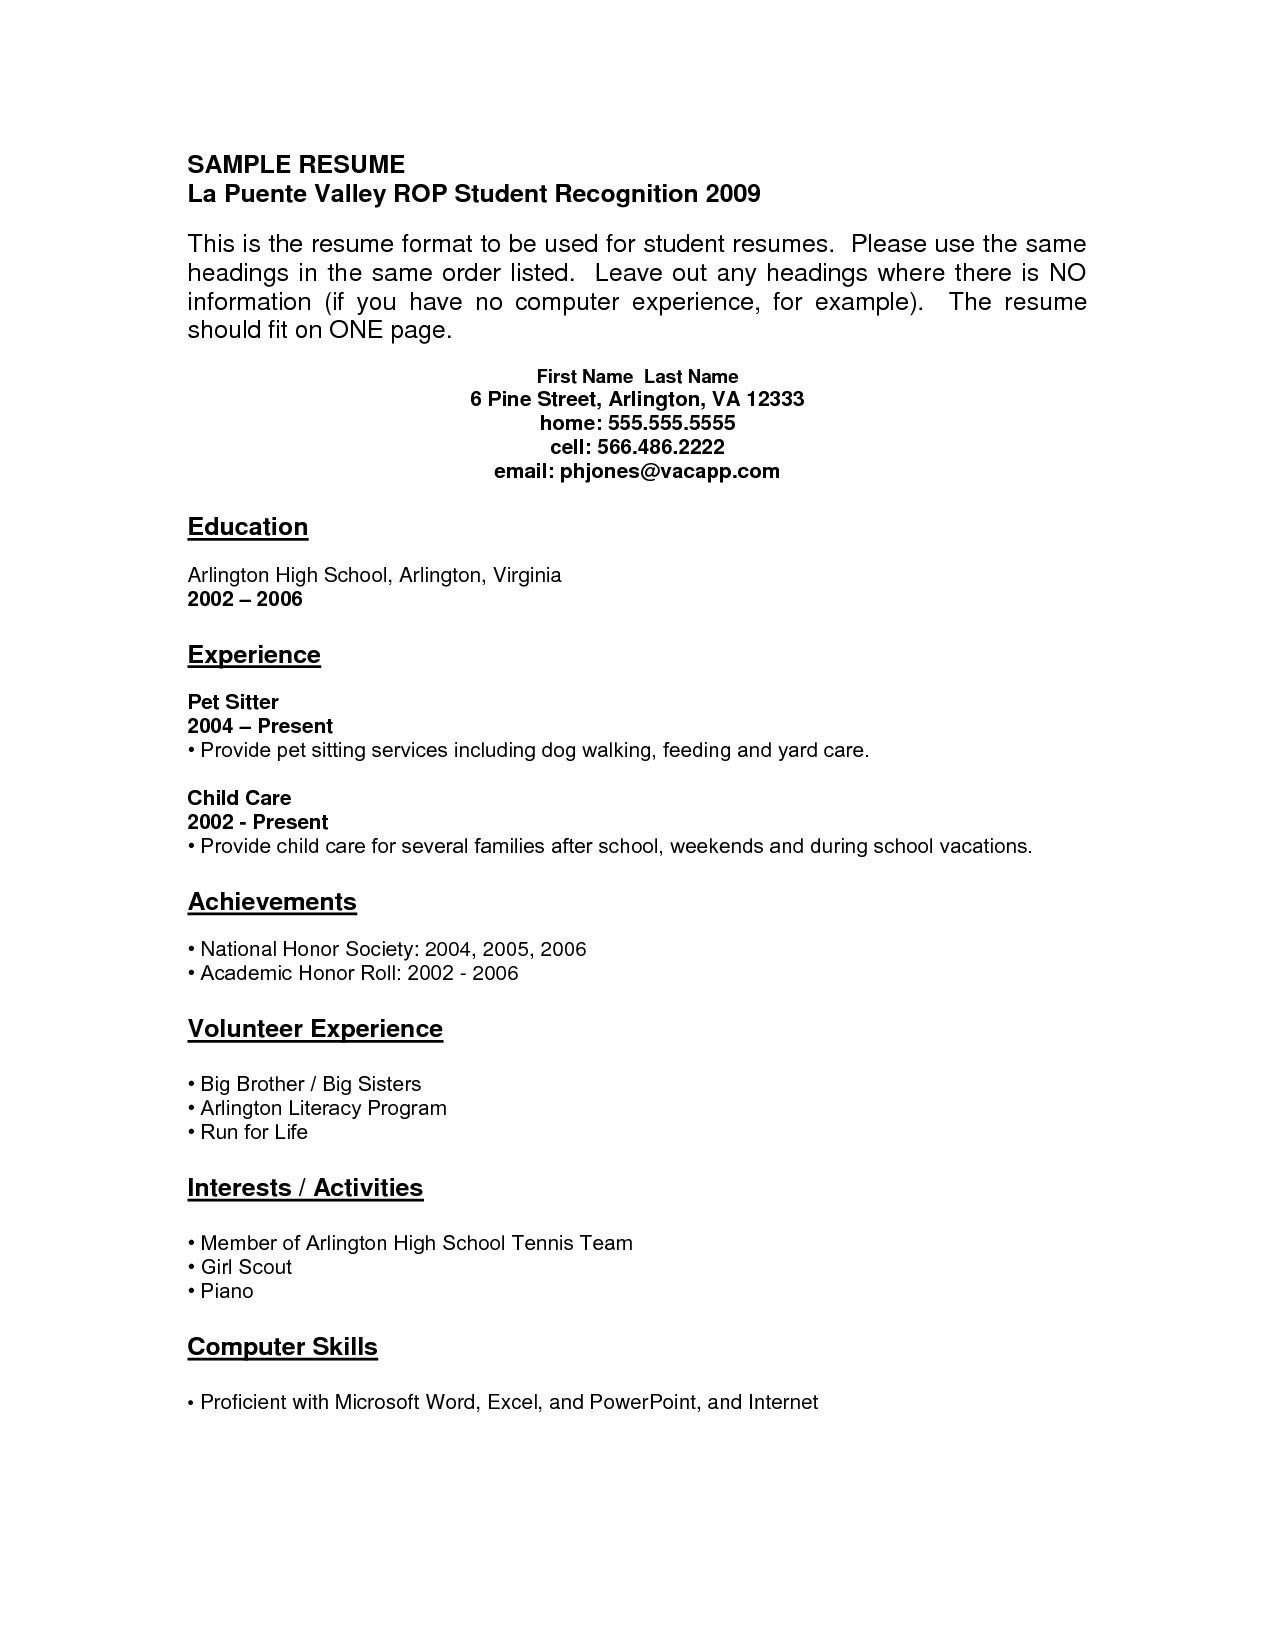 Sample Resume for High School Student with No Job Experience Resume Examples with No Job Experience - Resume Templates Job ...